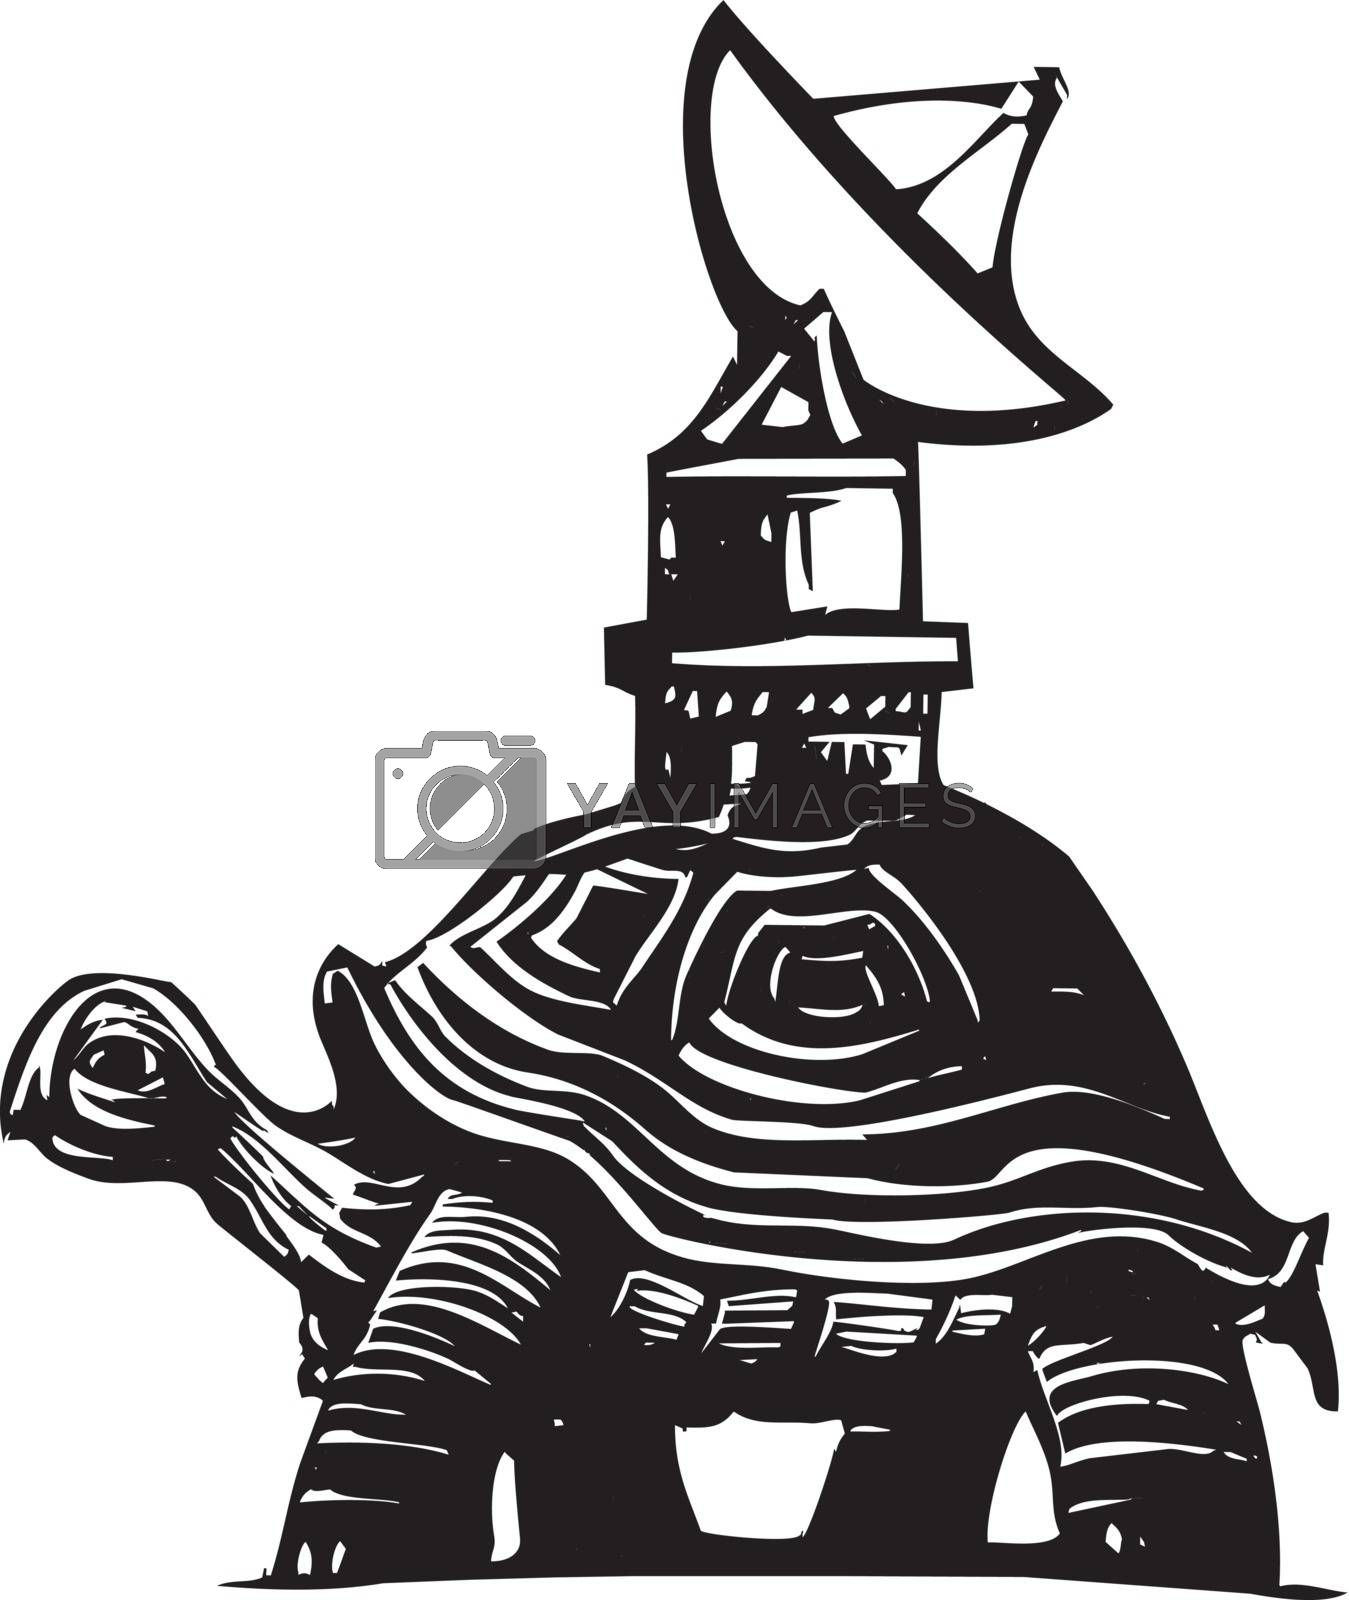 Woodcut style image of a turtle with a radio dish antenna on his back.